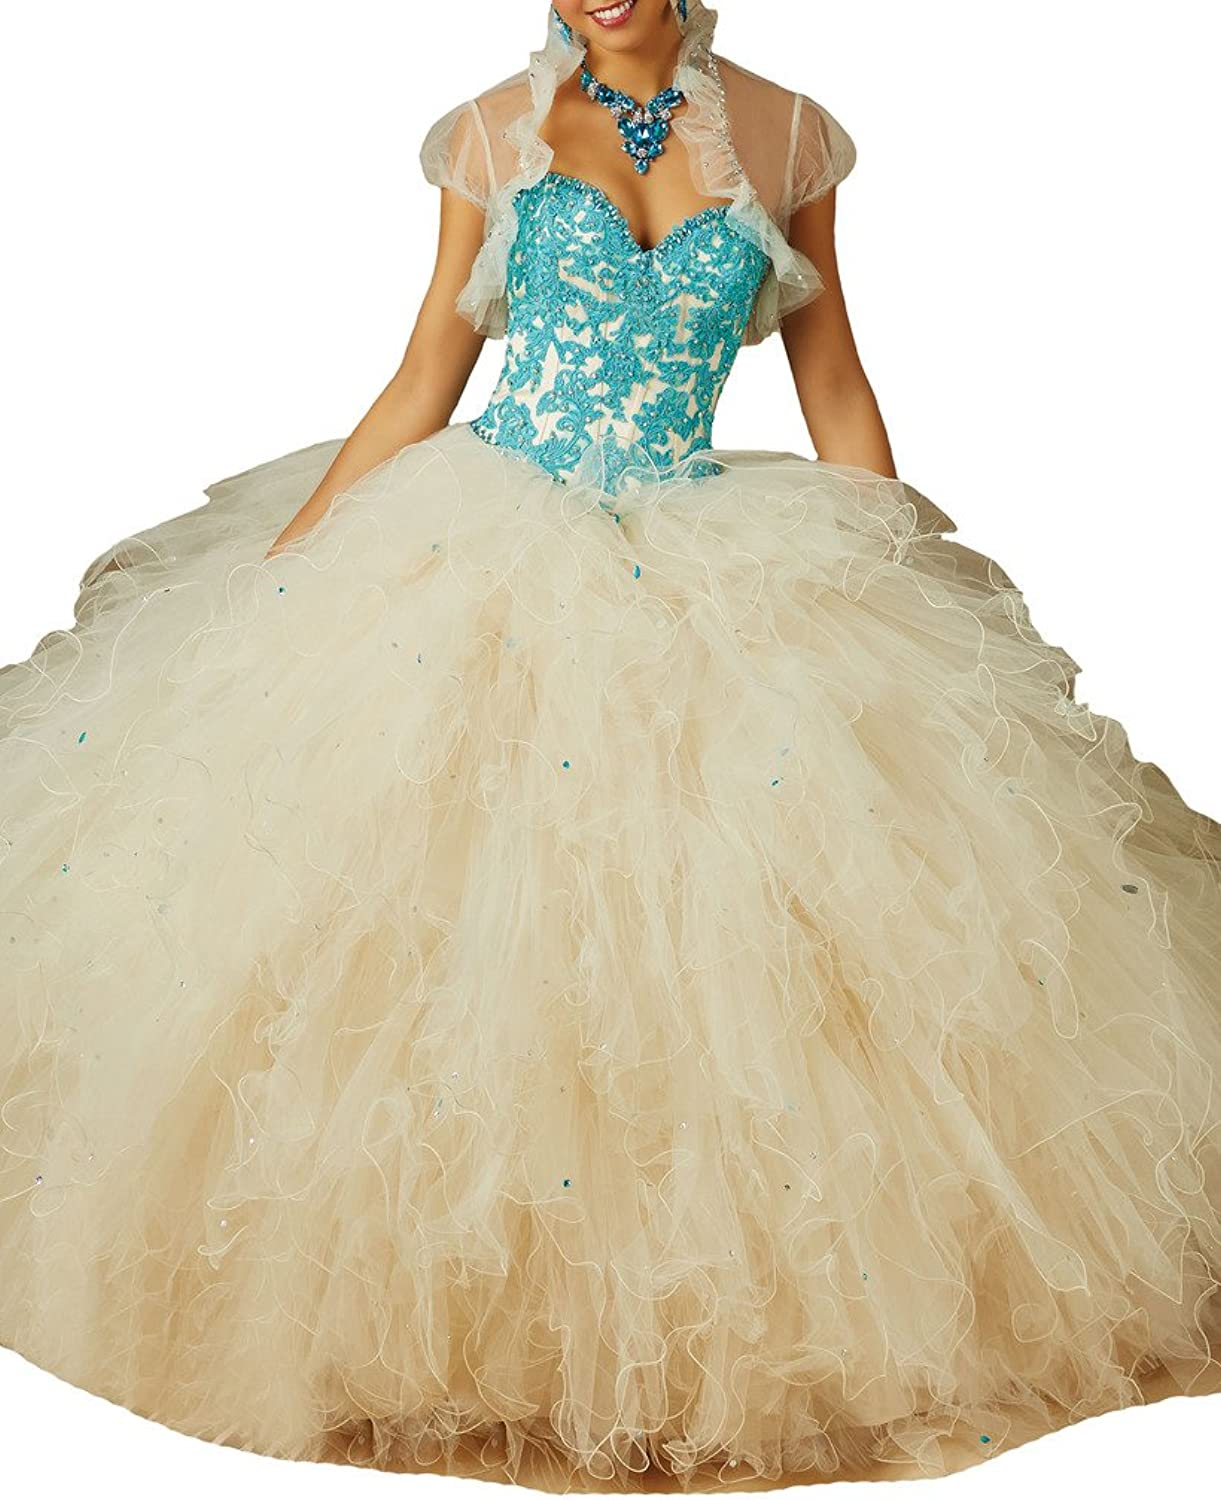 HSDJ Women's Stylish Ruffles Sweet 15 Sweetheart Quinceanera Ball Gowns